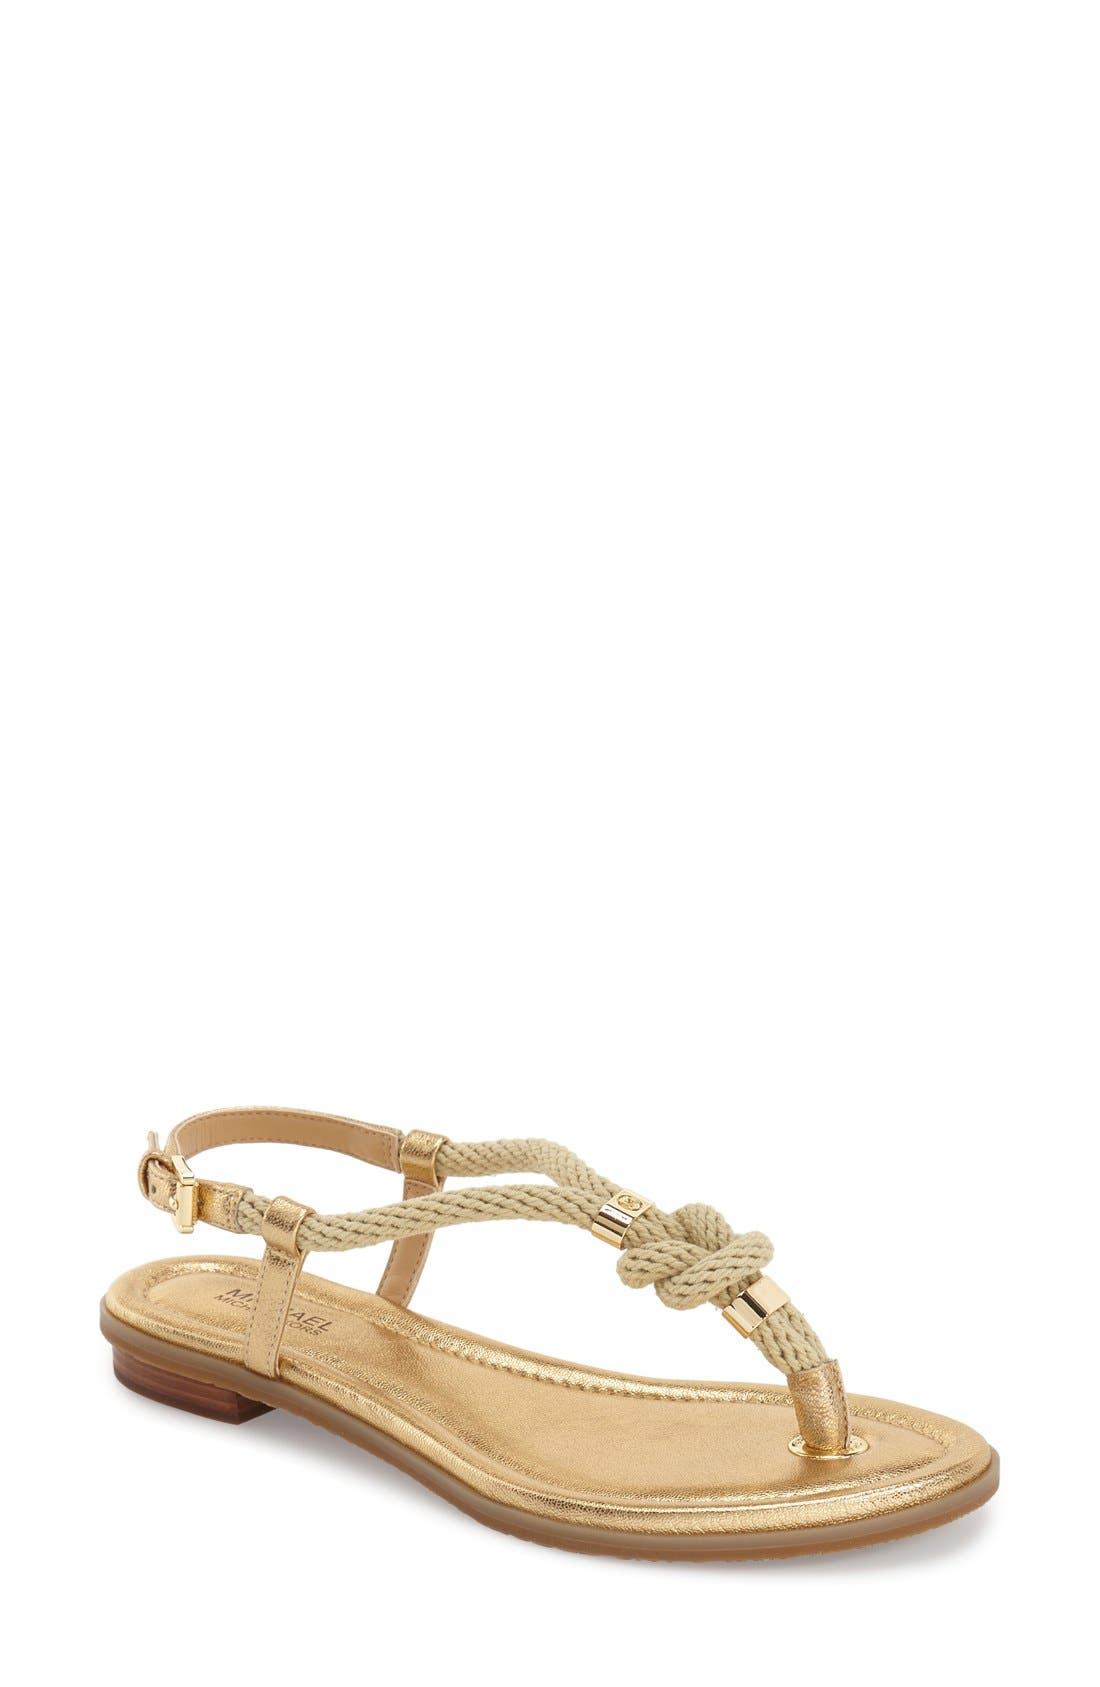 'Holly' Sandal,                         Main,                         color, Pale Gold